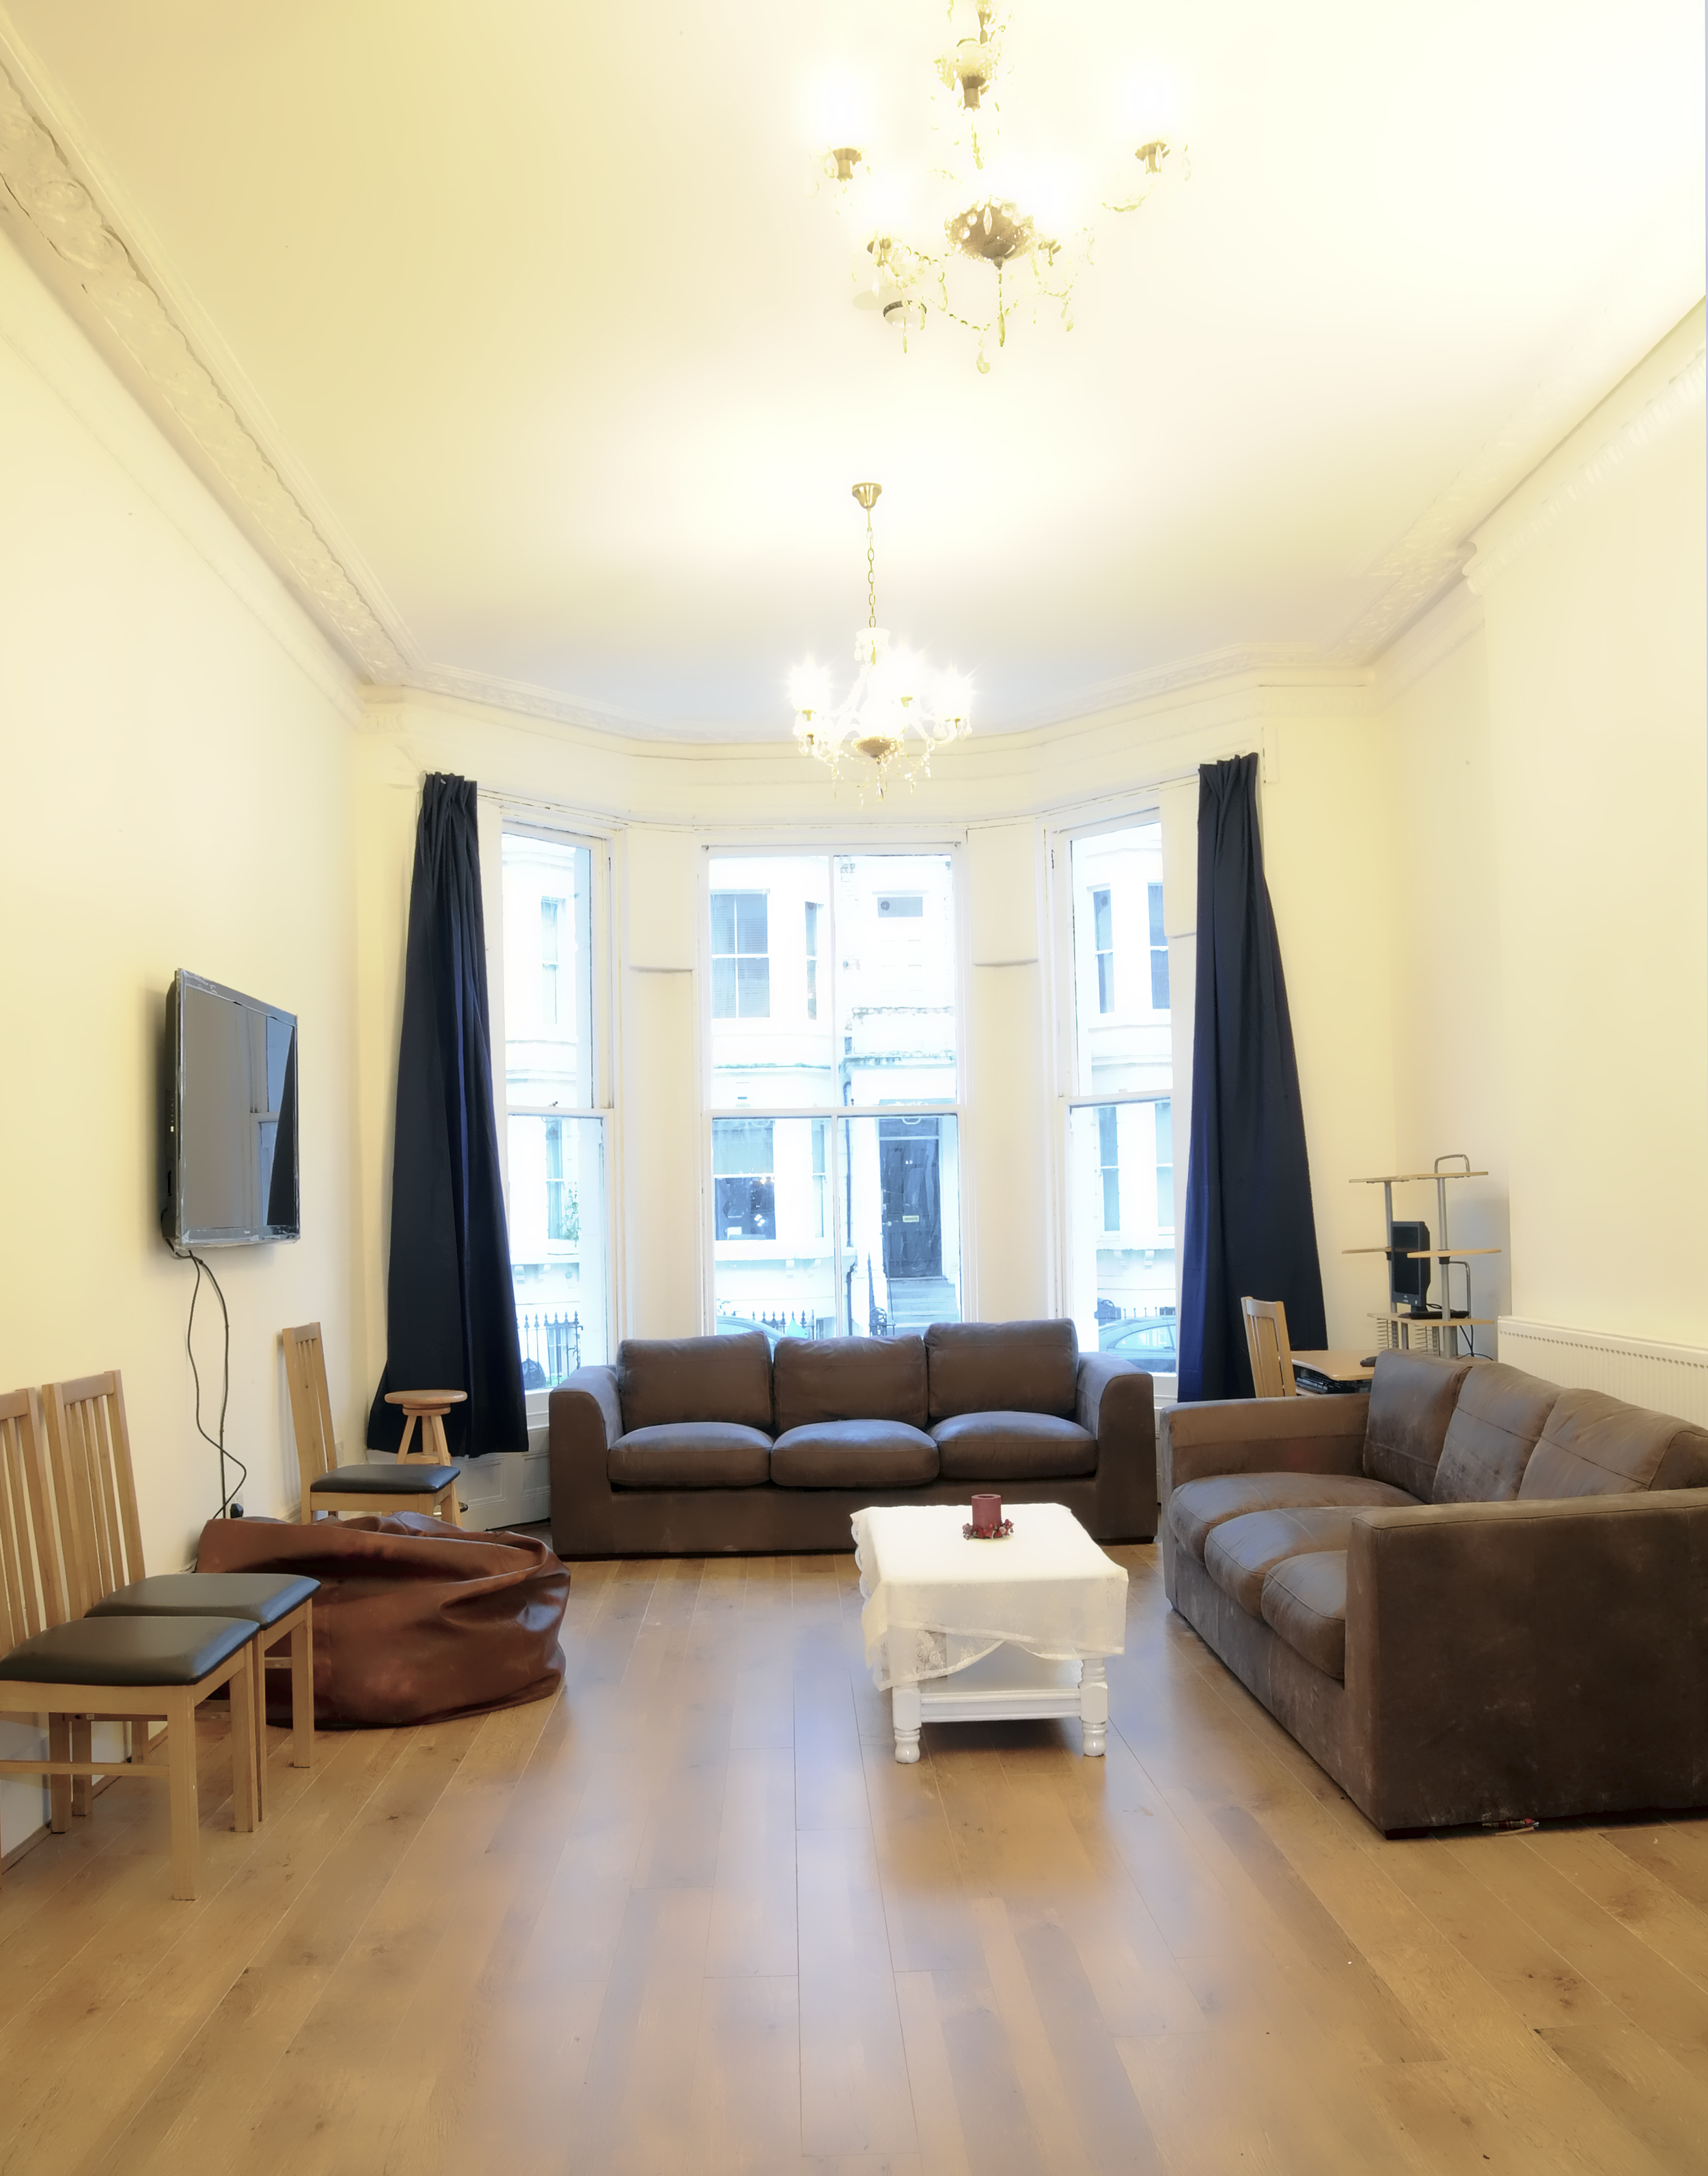 hostel-recreation-and-lounge-area-1.jpg